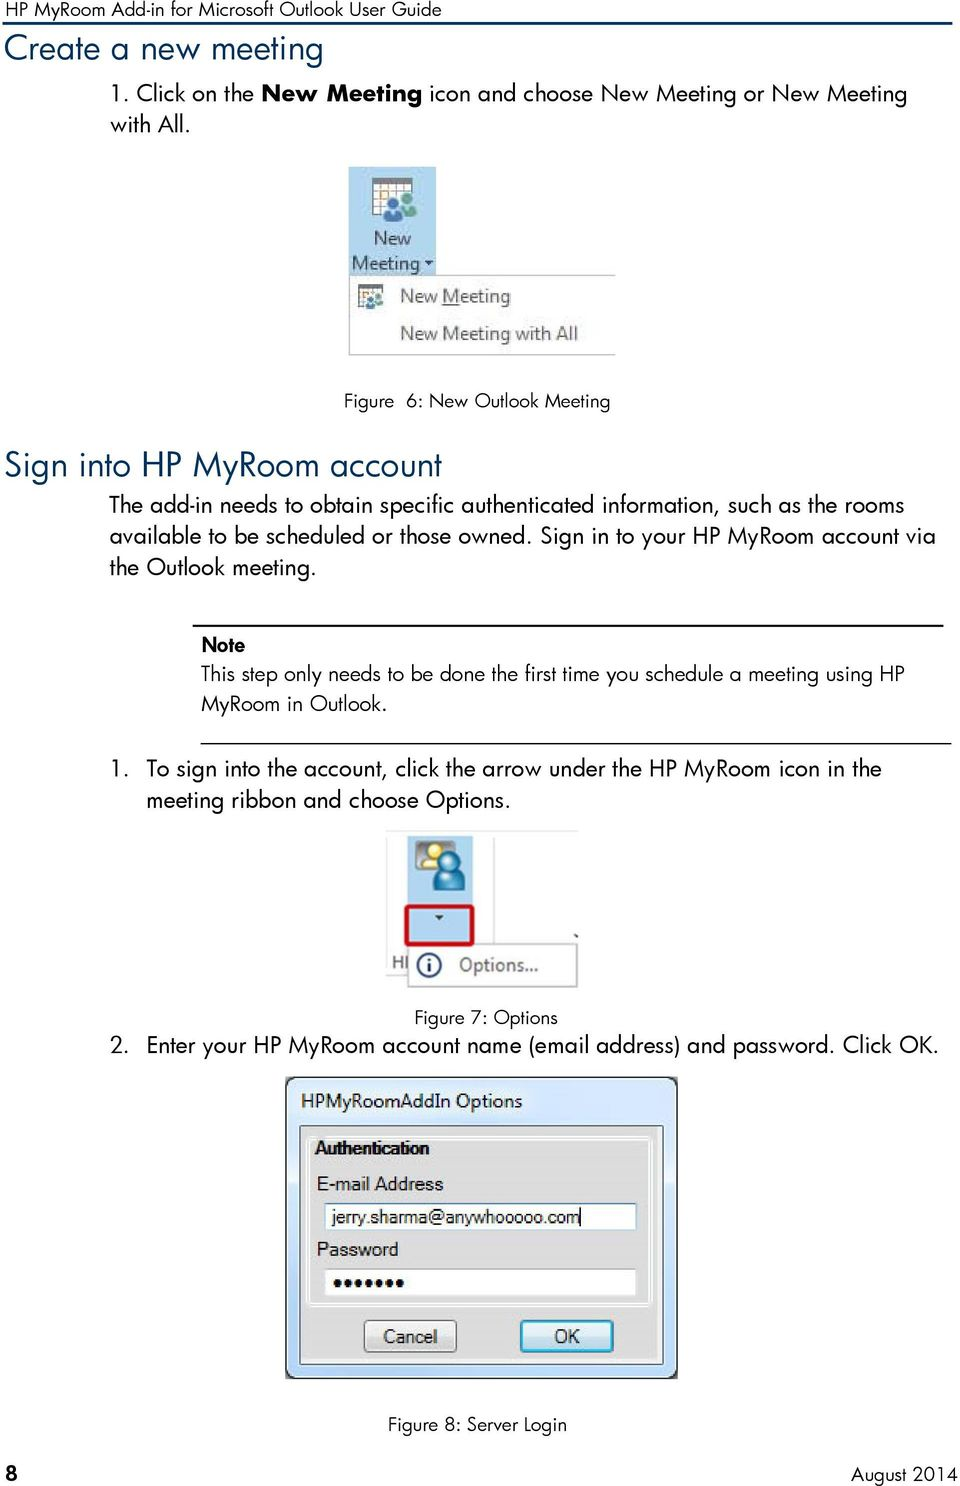 those owned. Sign in to your HP MyRoom account via the Outlook meeting.